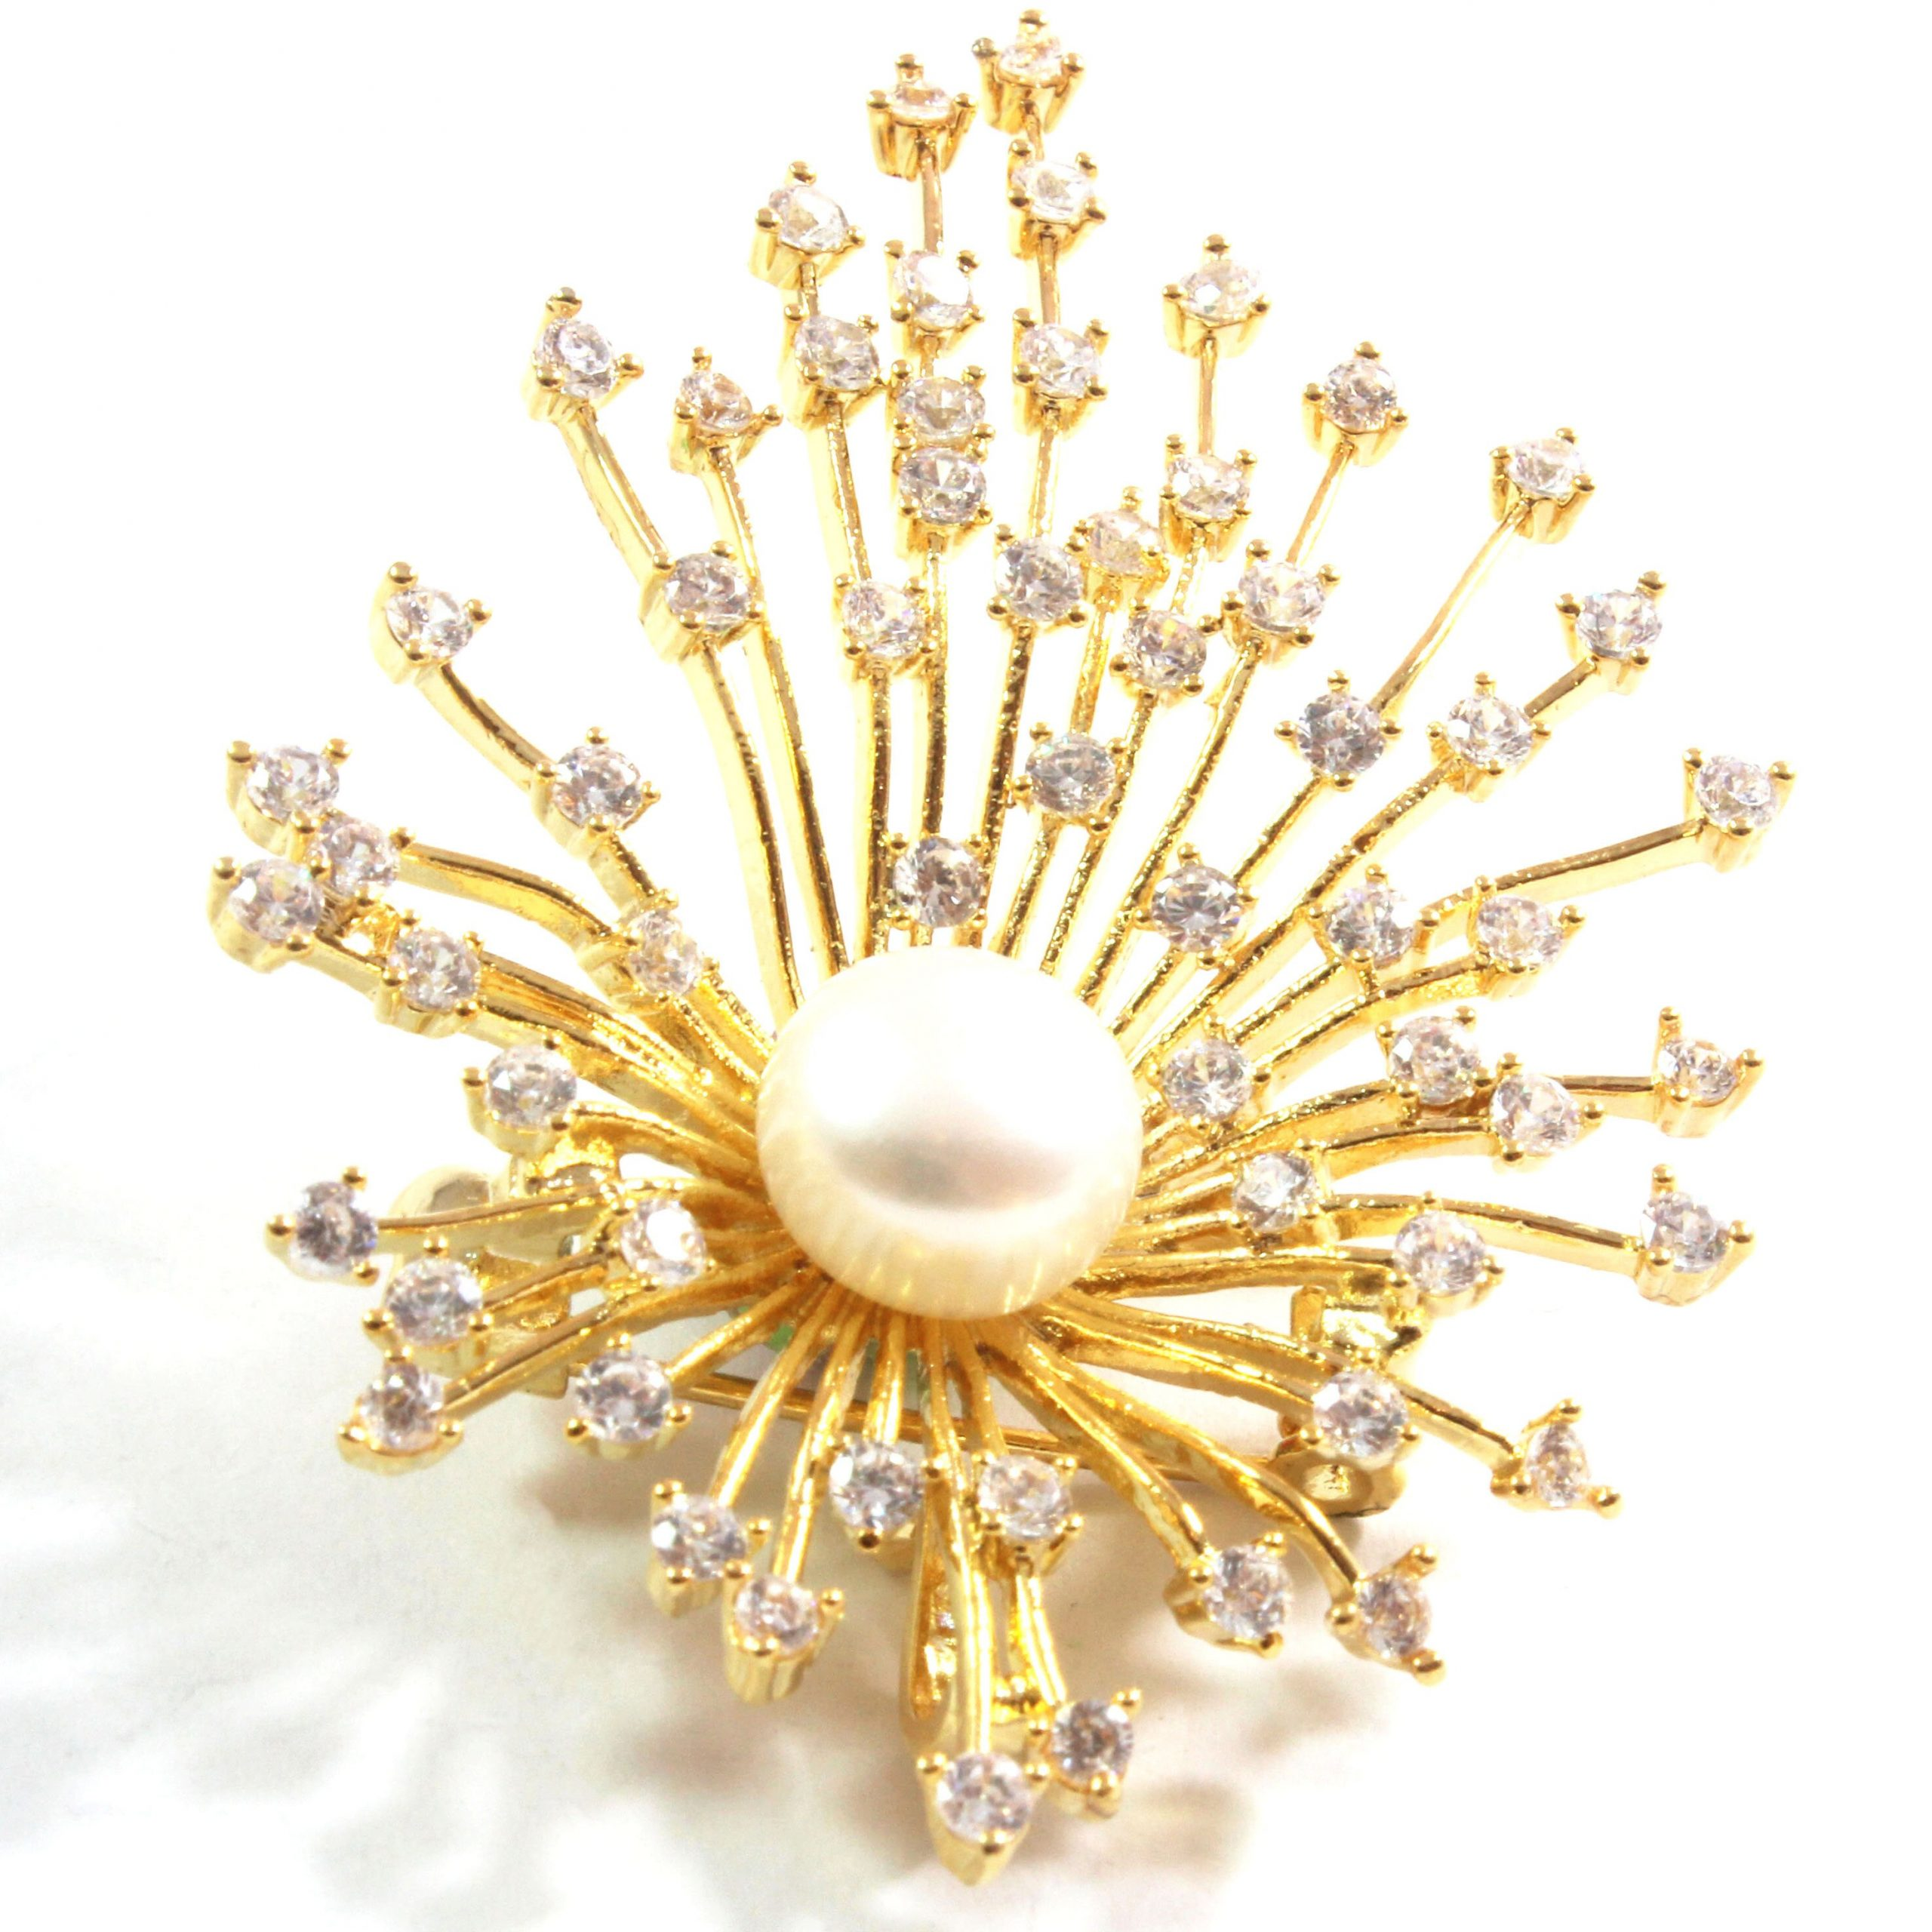 Golden Star White Freshwater Cultured Pearl Brooch 10.5-11.0mm